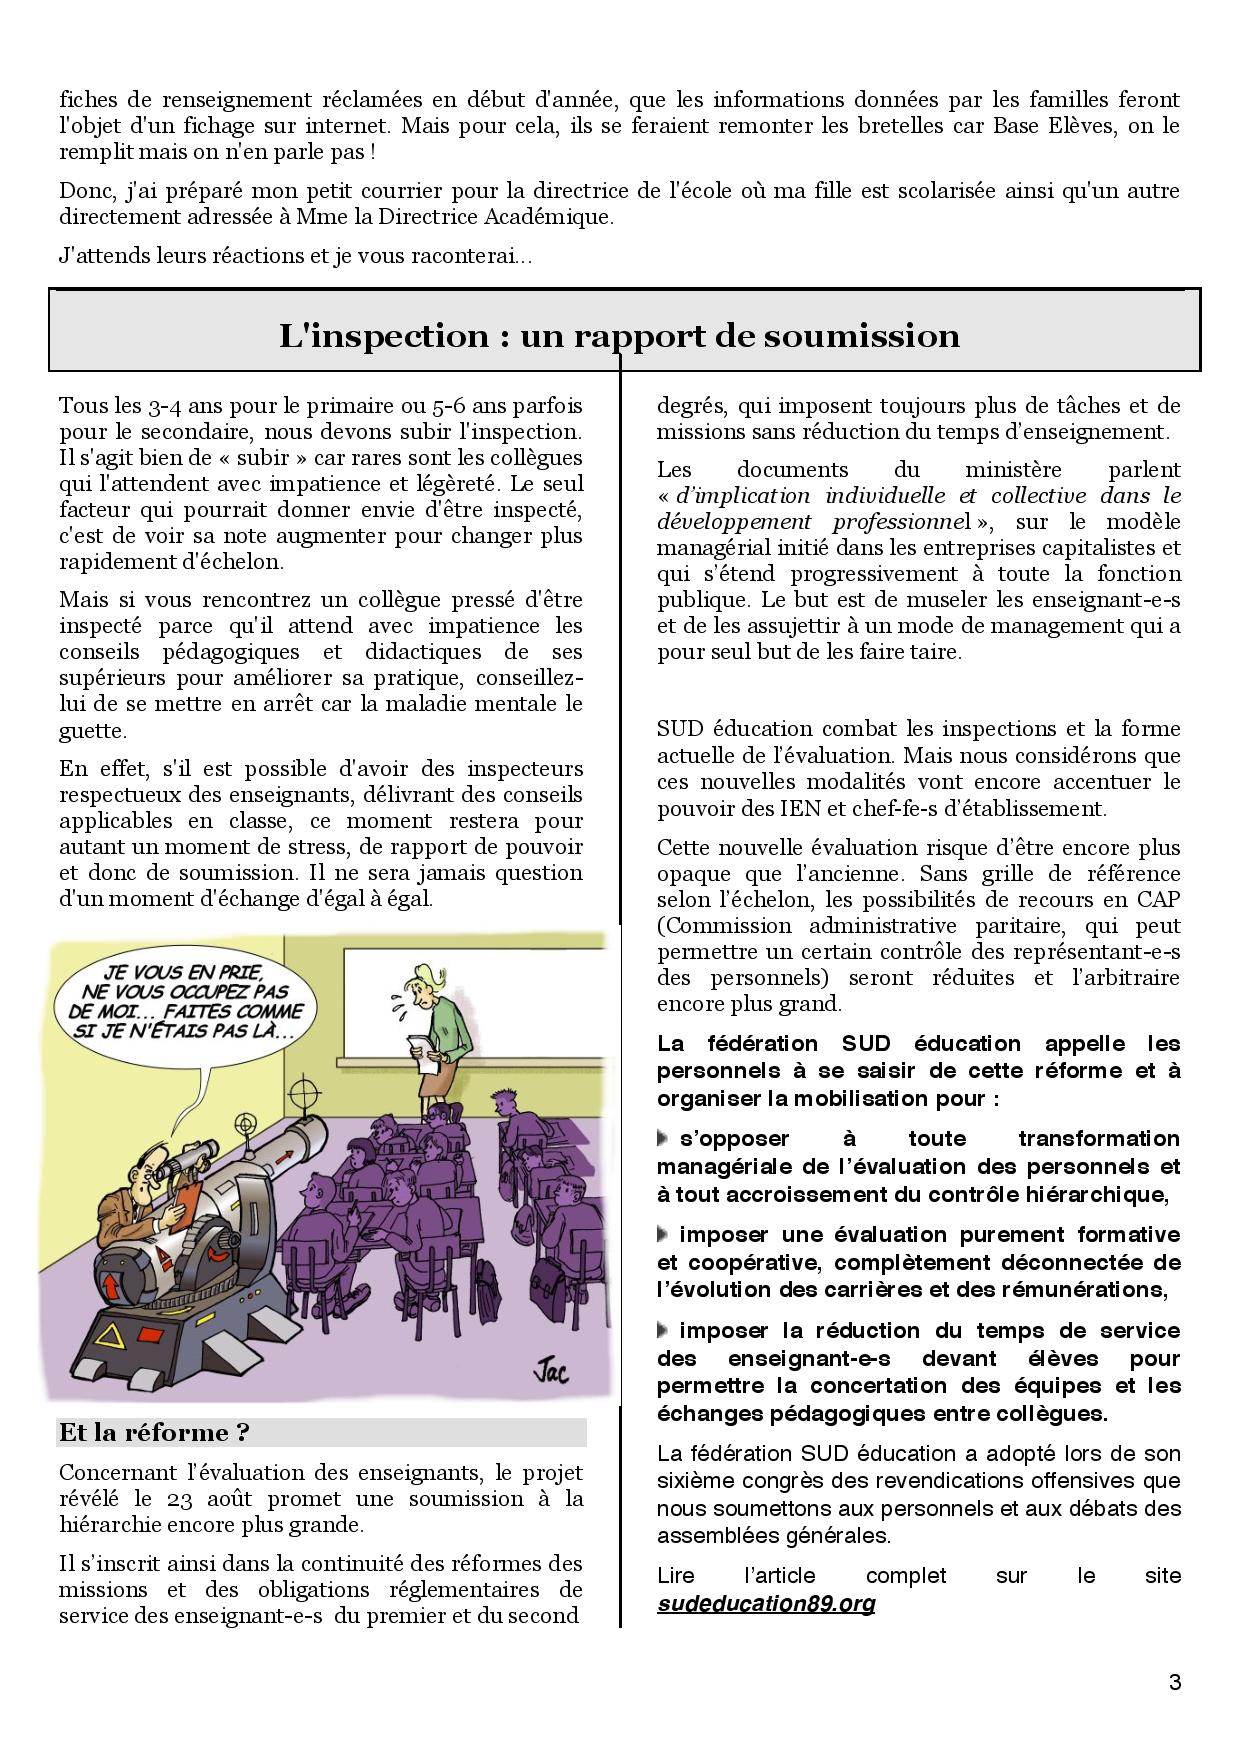 sud-education-journal-11-2016-page-003